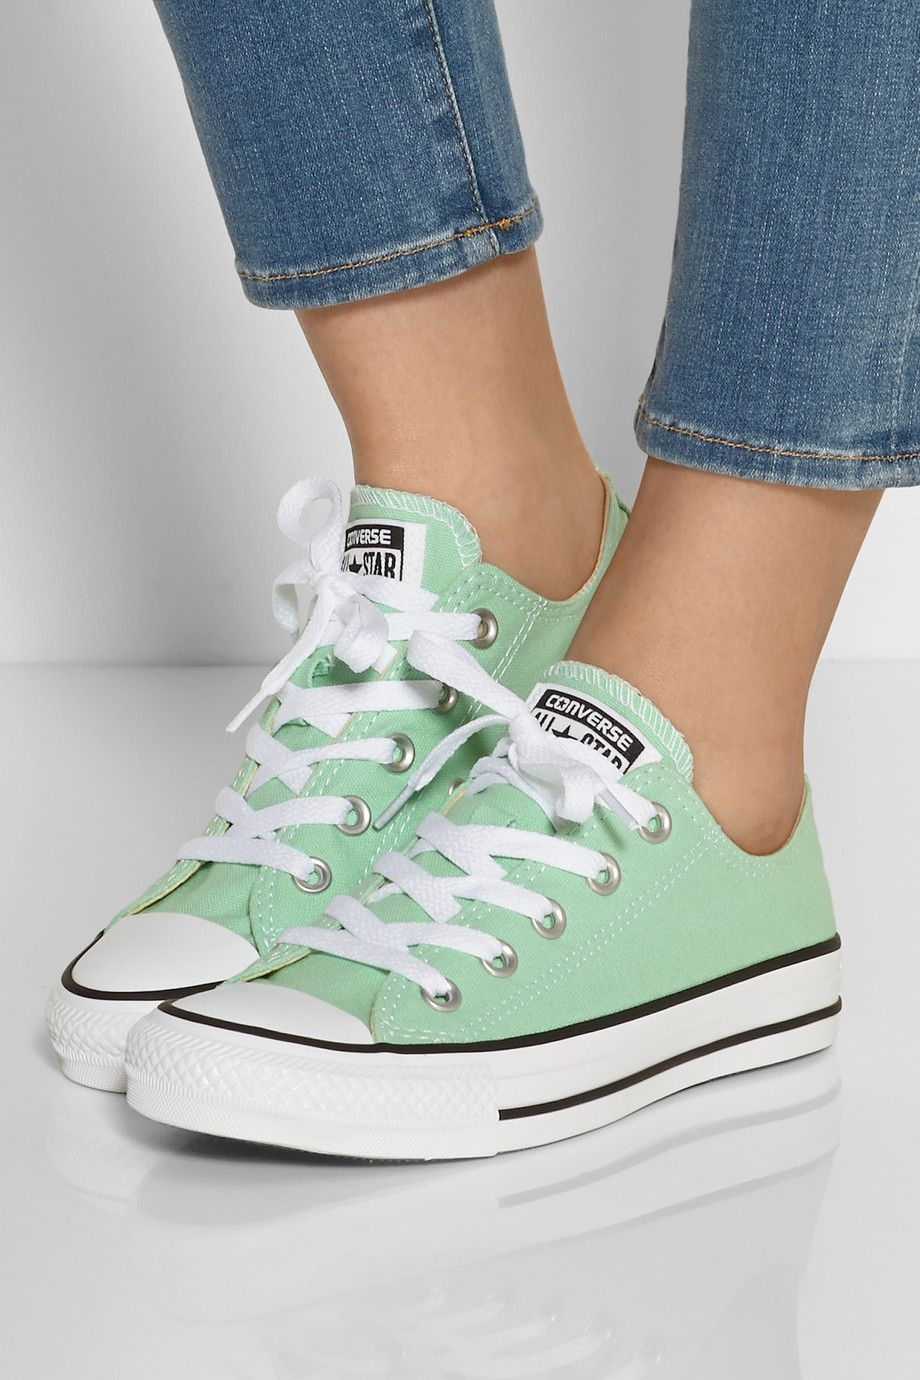 92df0034756d Chuck s aren t just for kids. They re great shoes to run around in!  CD